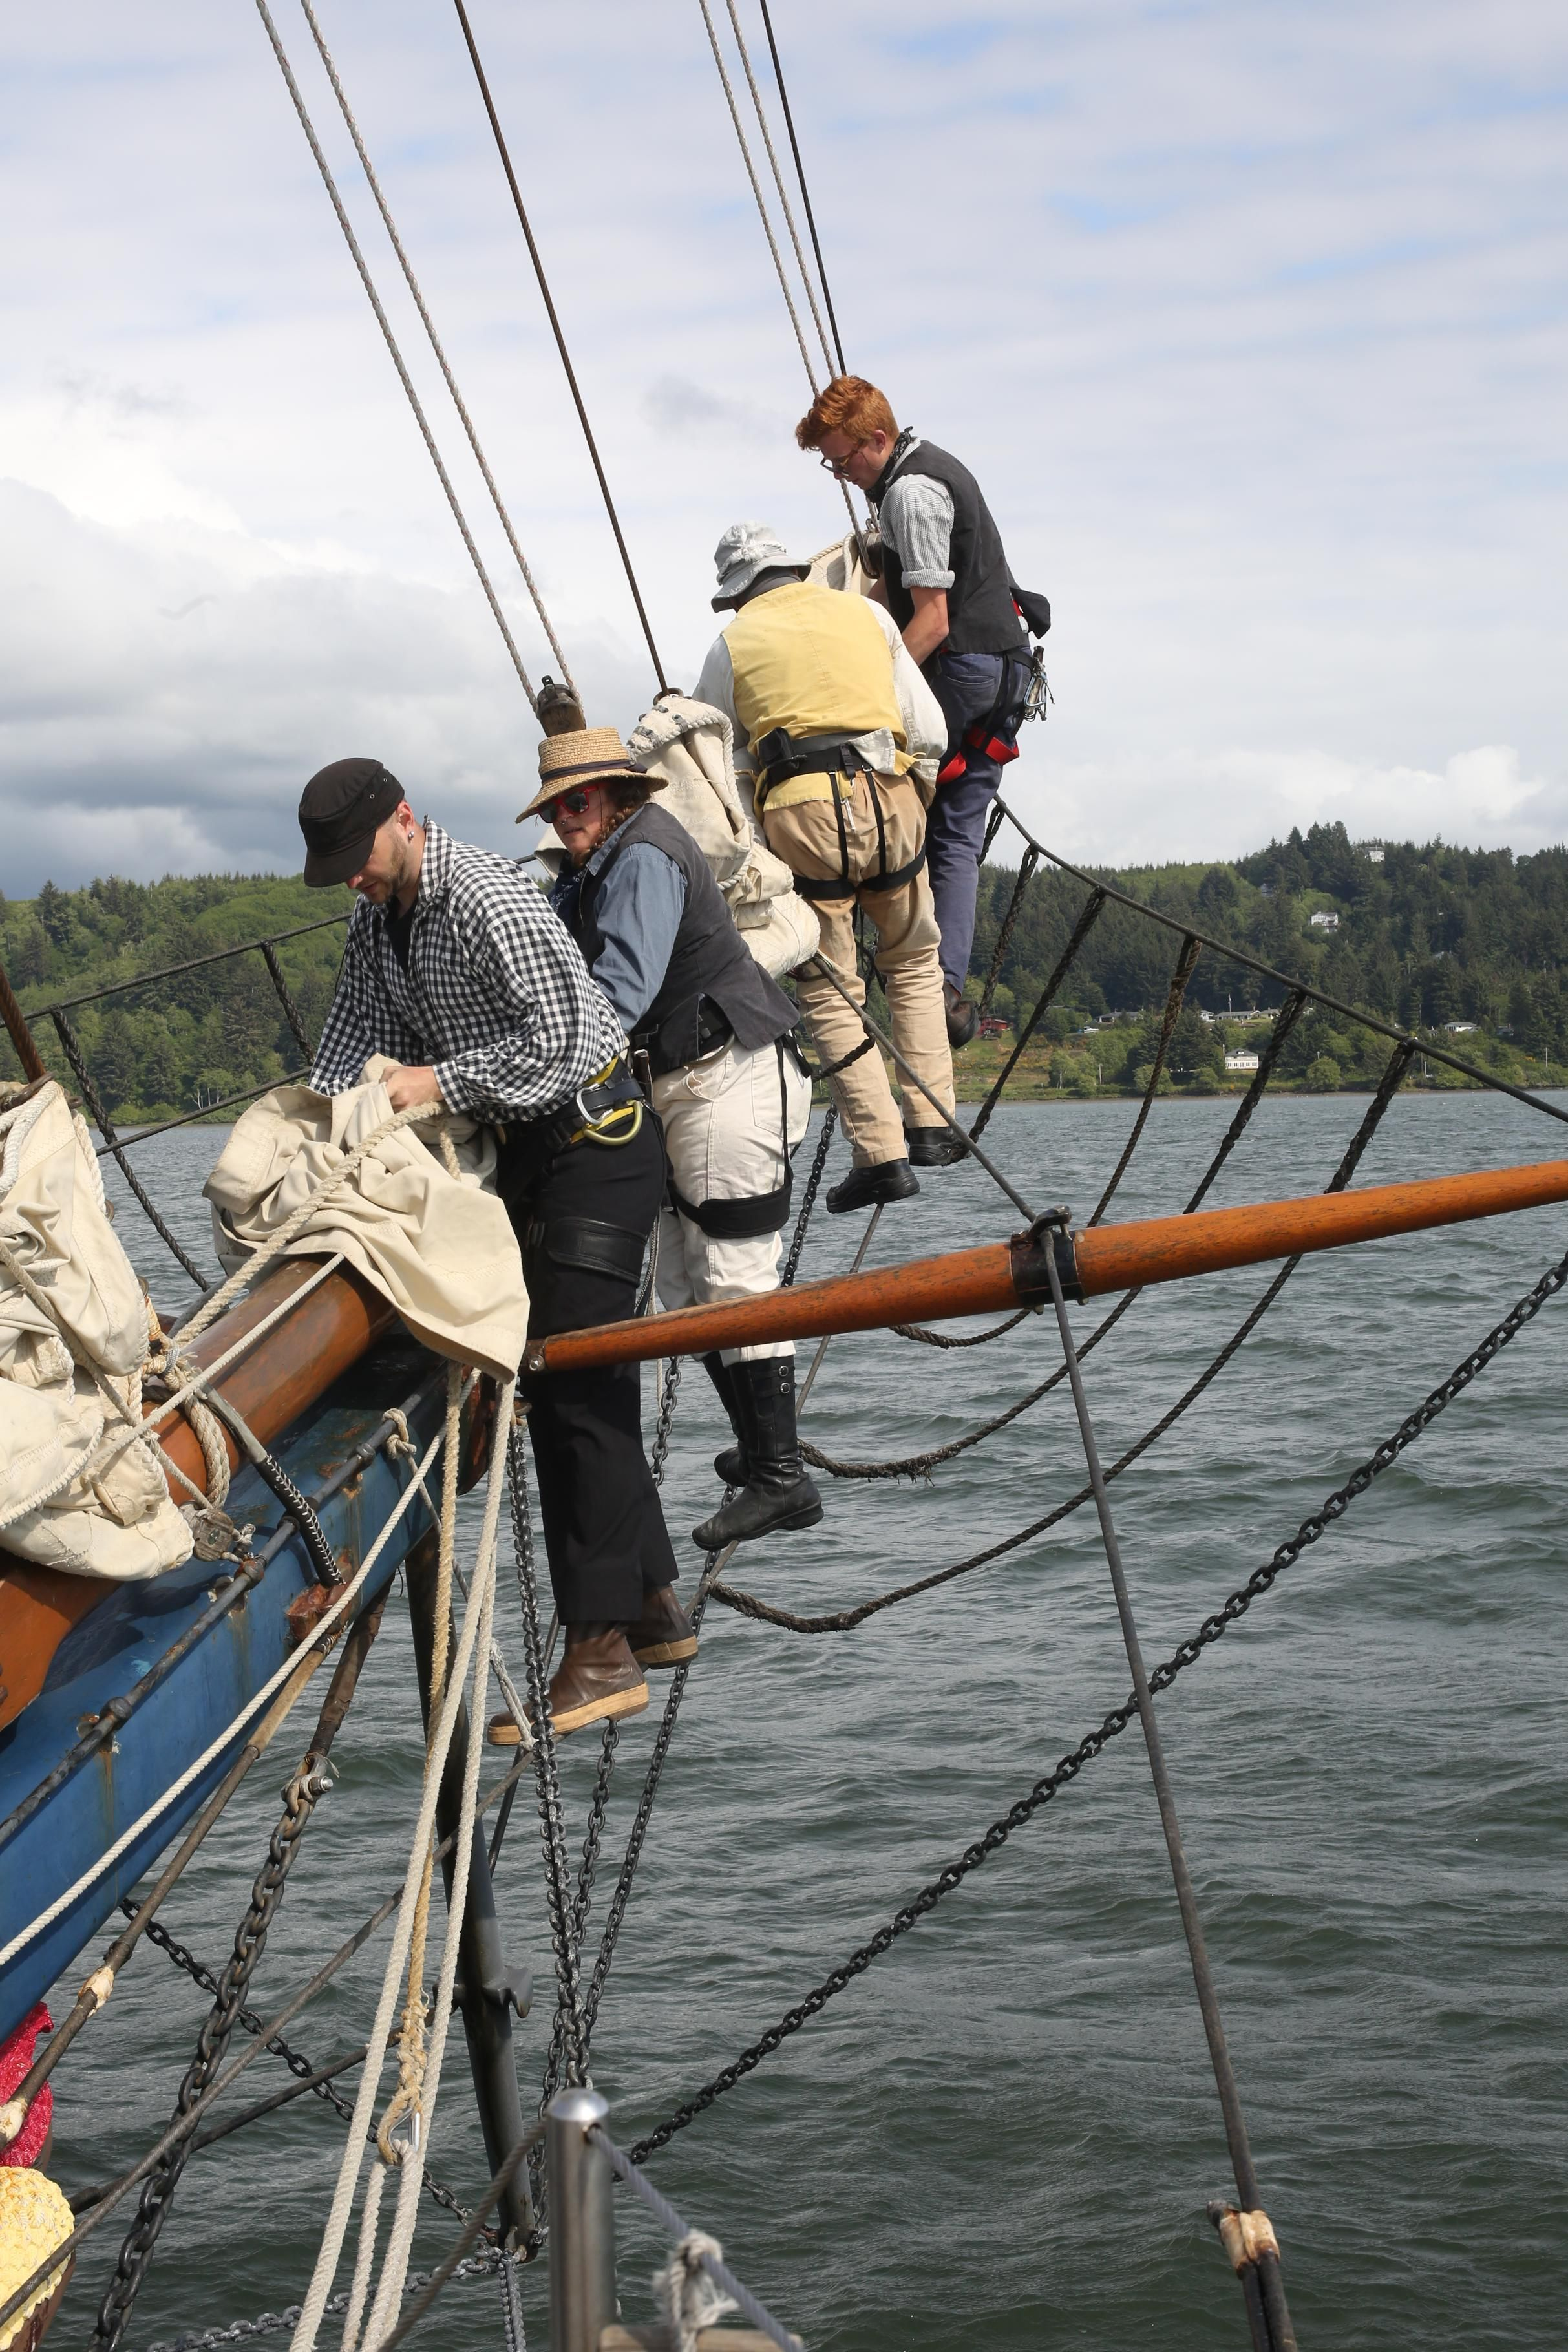 Crew work on the Hawaiian Chieftain's bowsprit in Newport, Ore. #travel #sailing #ships http://historicalseaport.org